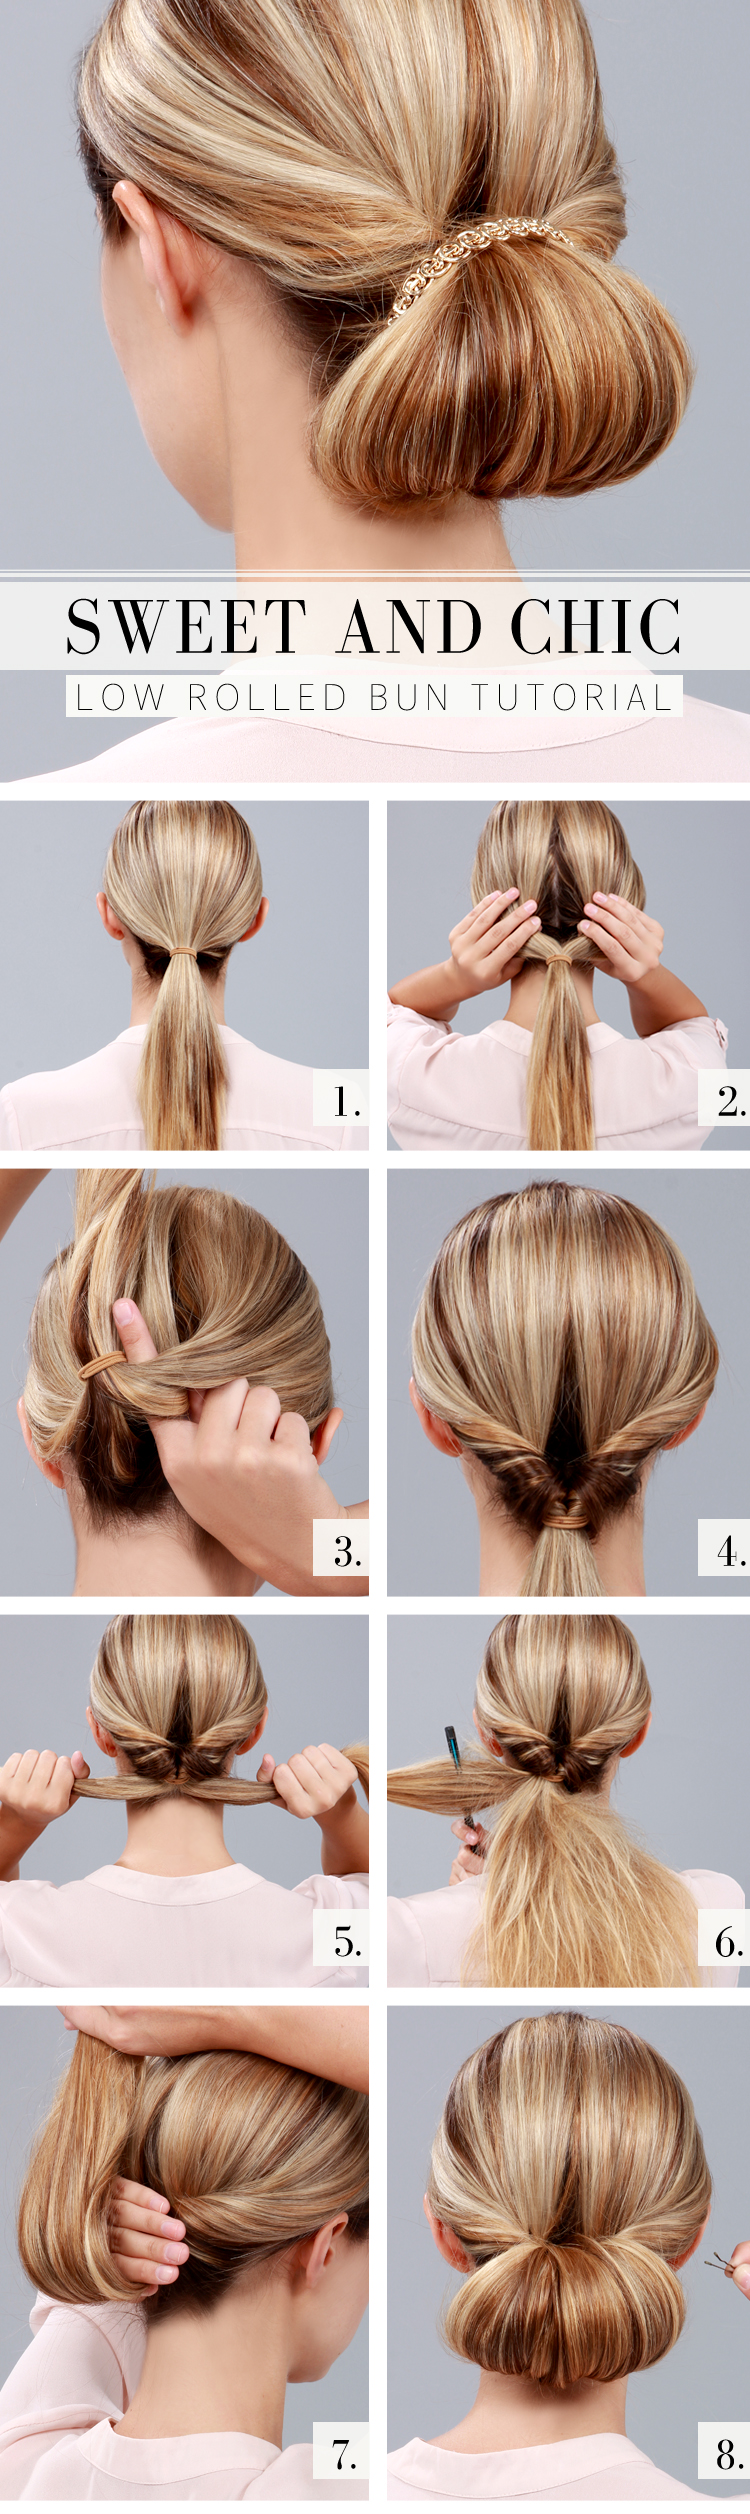 Stupendous Lulus How To Chic Low Rolled Bun Tutorial Lulus Com Fashion Blog Hairstyle Inspiration Daily Dogsangcom